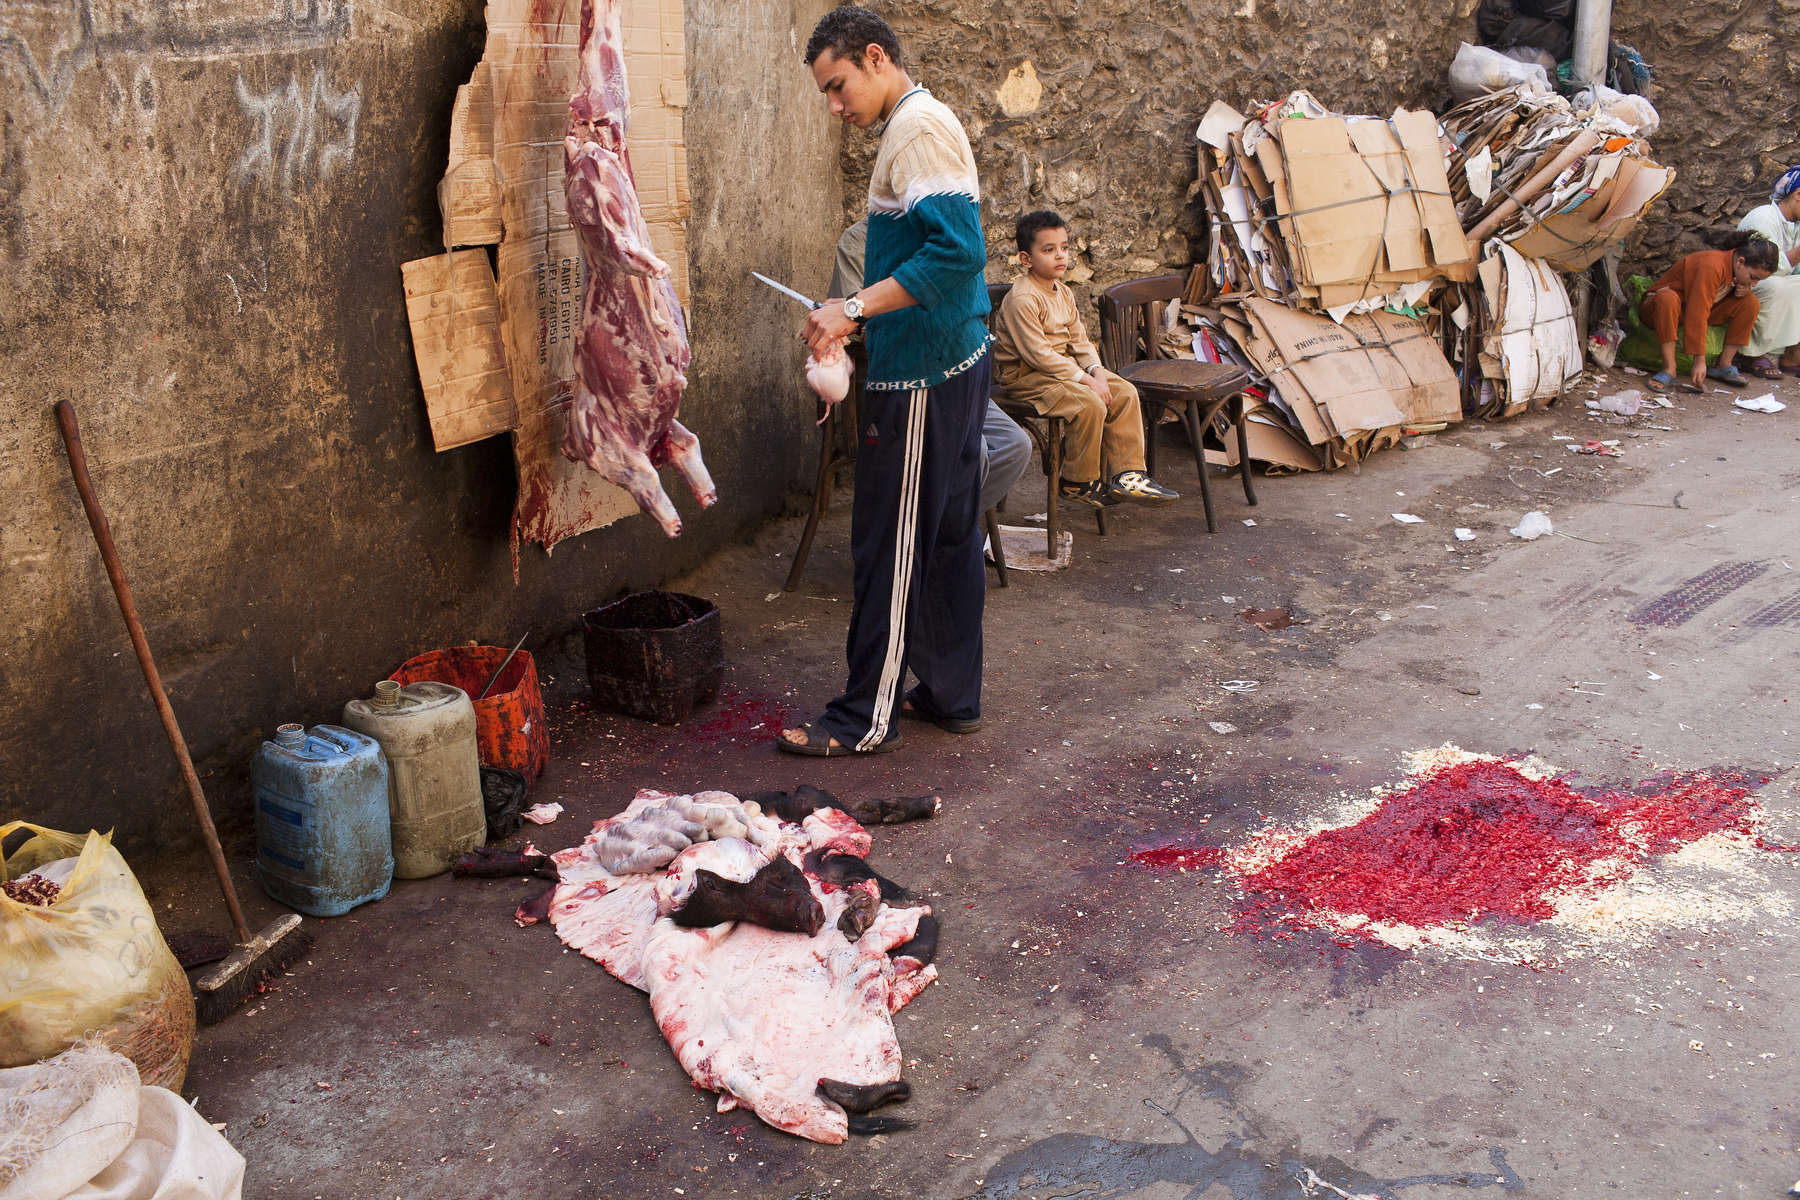 "A Zabaleen man skins a slaughtered pig in Moqqatam.Moqqatam is a suburb on the edge of Cairo and home to a people known as the Zabaleen, said to be the world's greatest waste recyclers. The Zabaleen, which means plainly enough, ""the garbage collectors"", pick up around 4,000 tons of Cairo's waste each day. American researchers have shown that the Zabaleen recycle 85% of this garbage into something useful: a higher rate than anywhere else on the planet. The men do two shifts leaving about 4am and again around 9am. The rubbish is taken back to Moqqatam for the women to sit in and sort through. The organic waste is fed to livestock (the Zabaleen are originally swine herders), the rest sorted for recycling. The future of the Zabaleen is uncertain: if the Cairo authorities get their way, this community of around 25,000 Coptic Christians living in a Muslim country will be gone, and with it, their unique lifestyle."